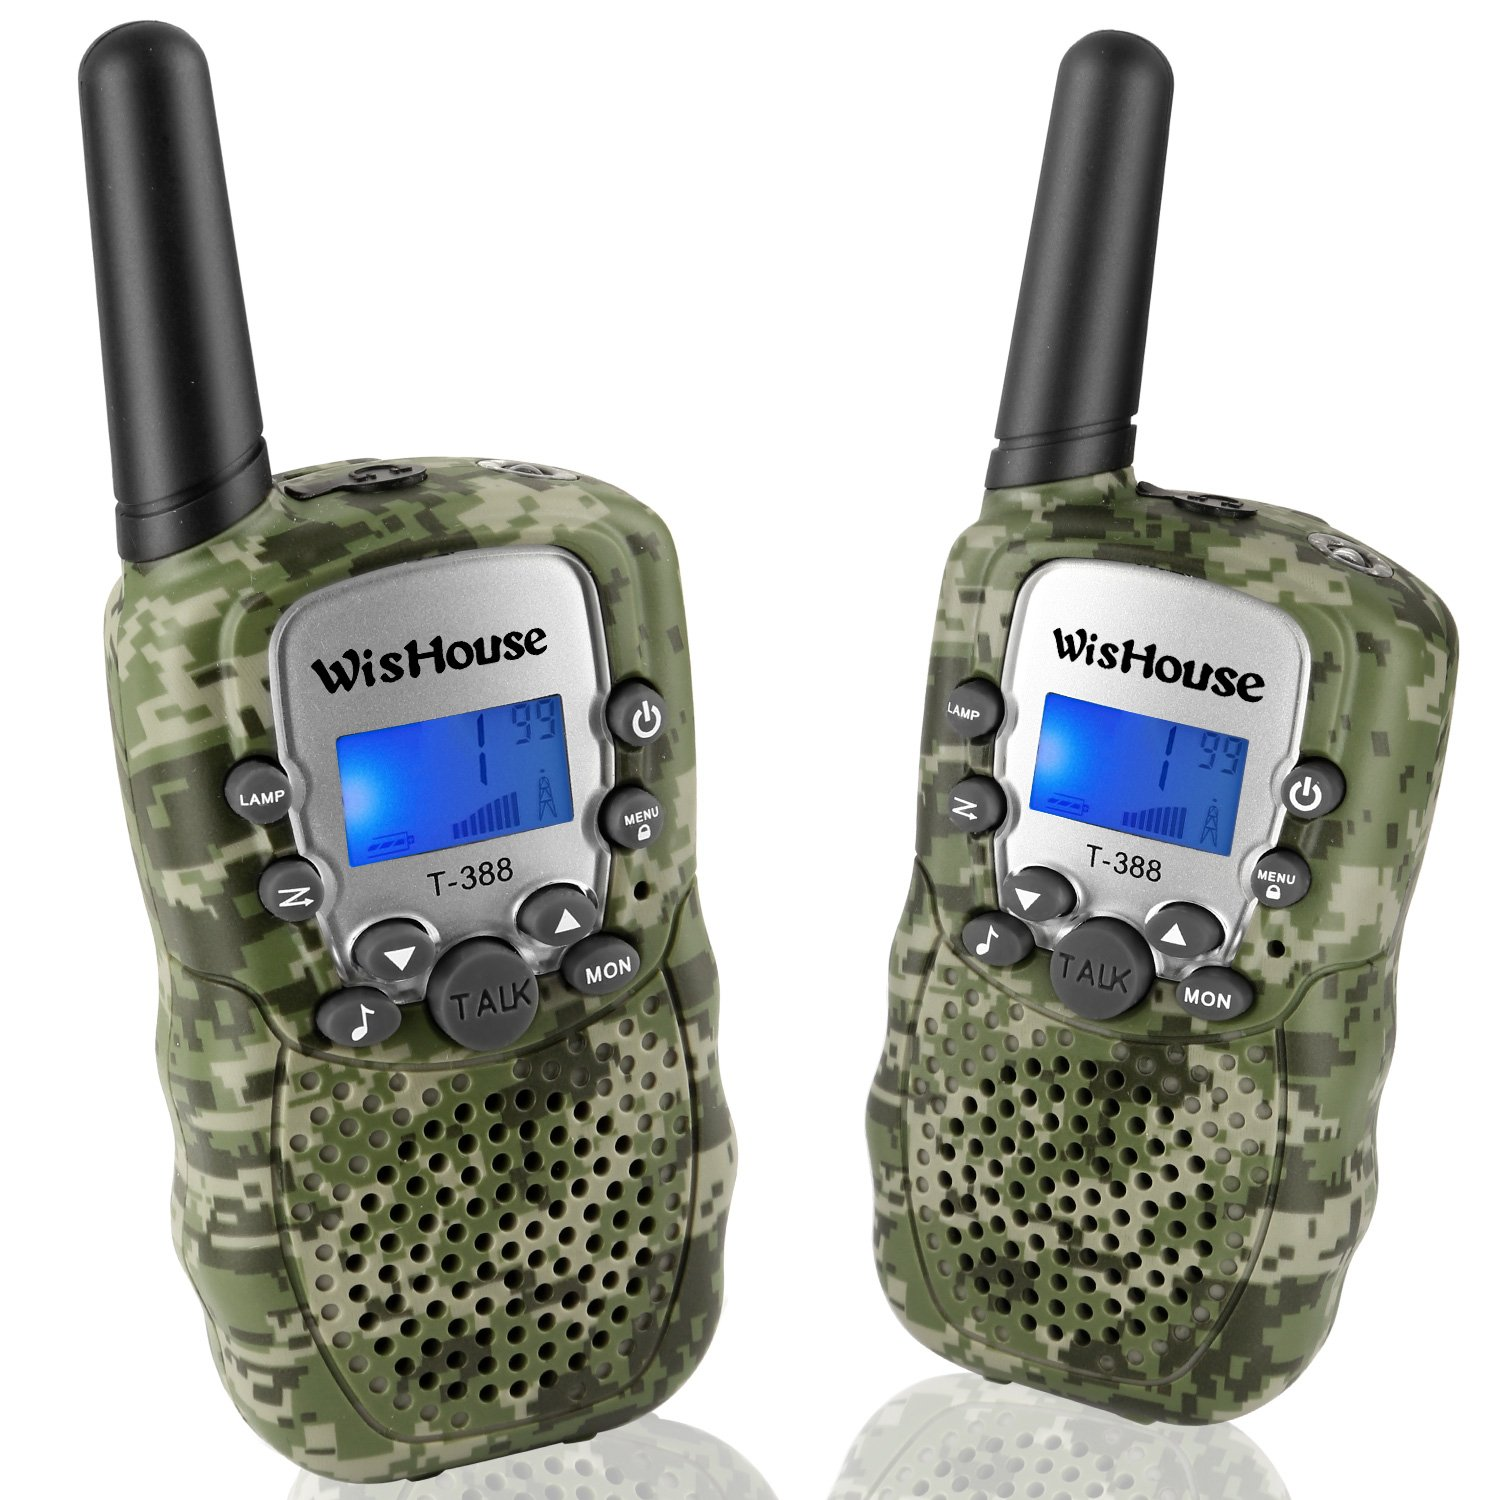 Wishouse Walkie Talkies for Kids,Popular Toys for Boys and Girls Best Handheld Woki Toki with Flashlight,License free Kids Survival Gear for Hunting and Outdoor Adventure(T388 Camouflage 2 Pack) by Wishouse (Image #1)